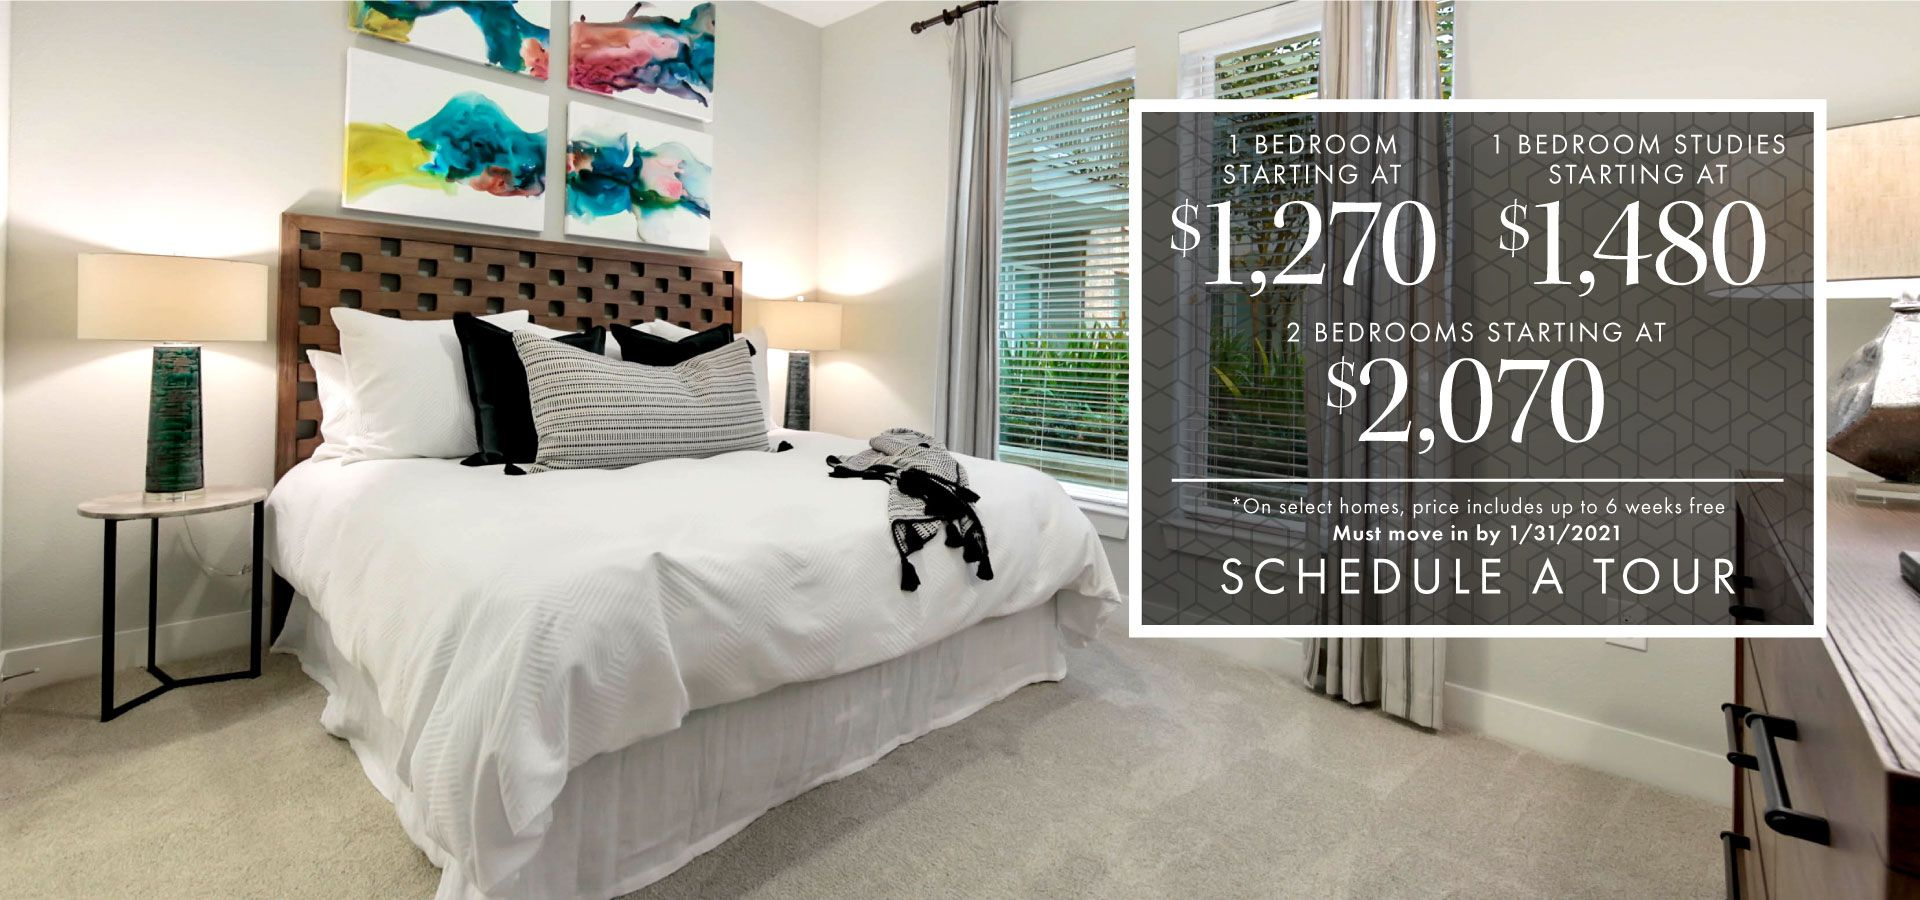 Move-In Specials for 1 and 2 Bedroom homes | Schedule a Tour Today